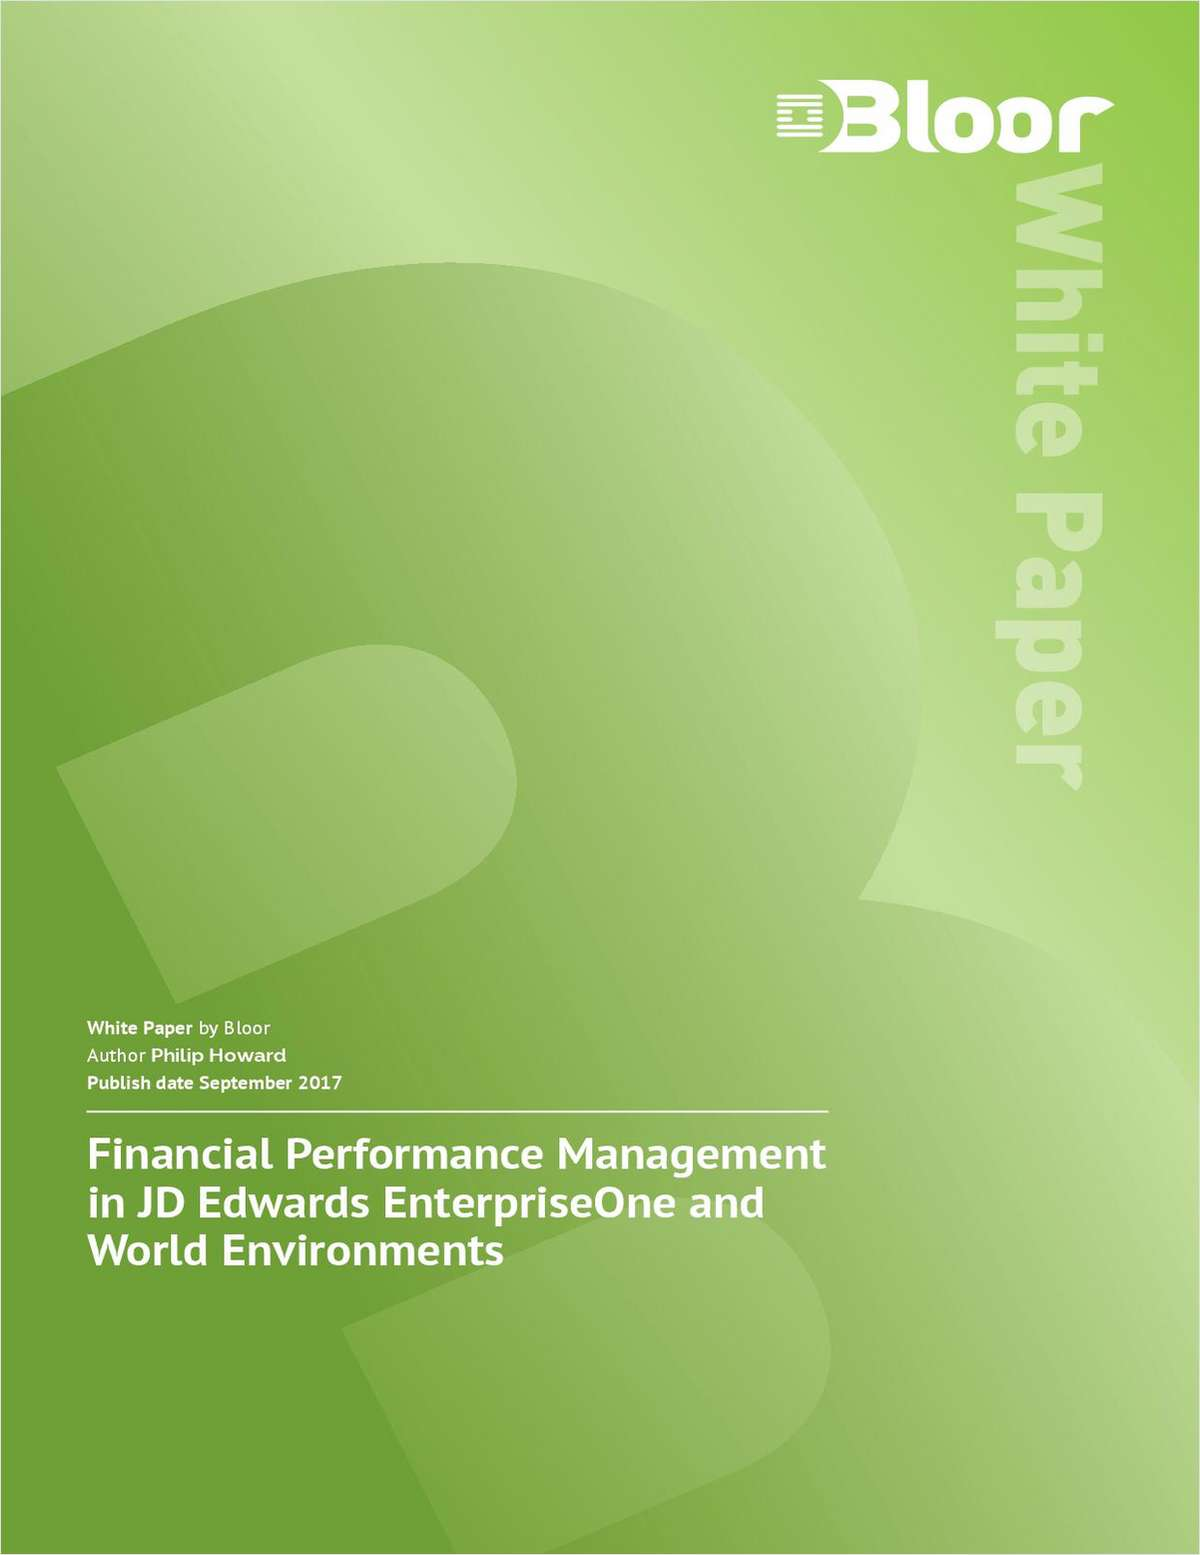 Performance Management in JD Edwards EnterpriseOne and World